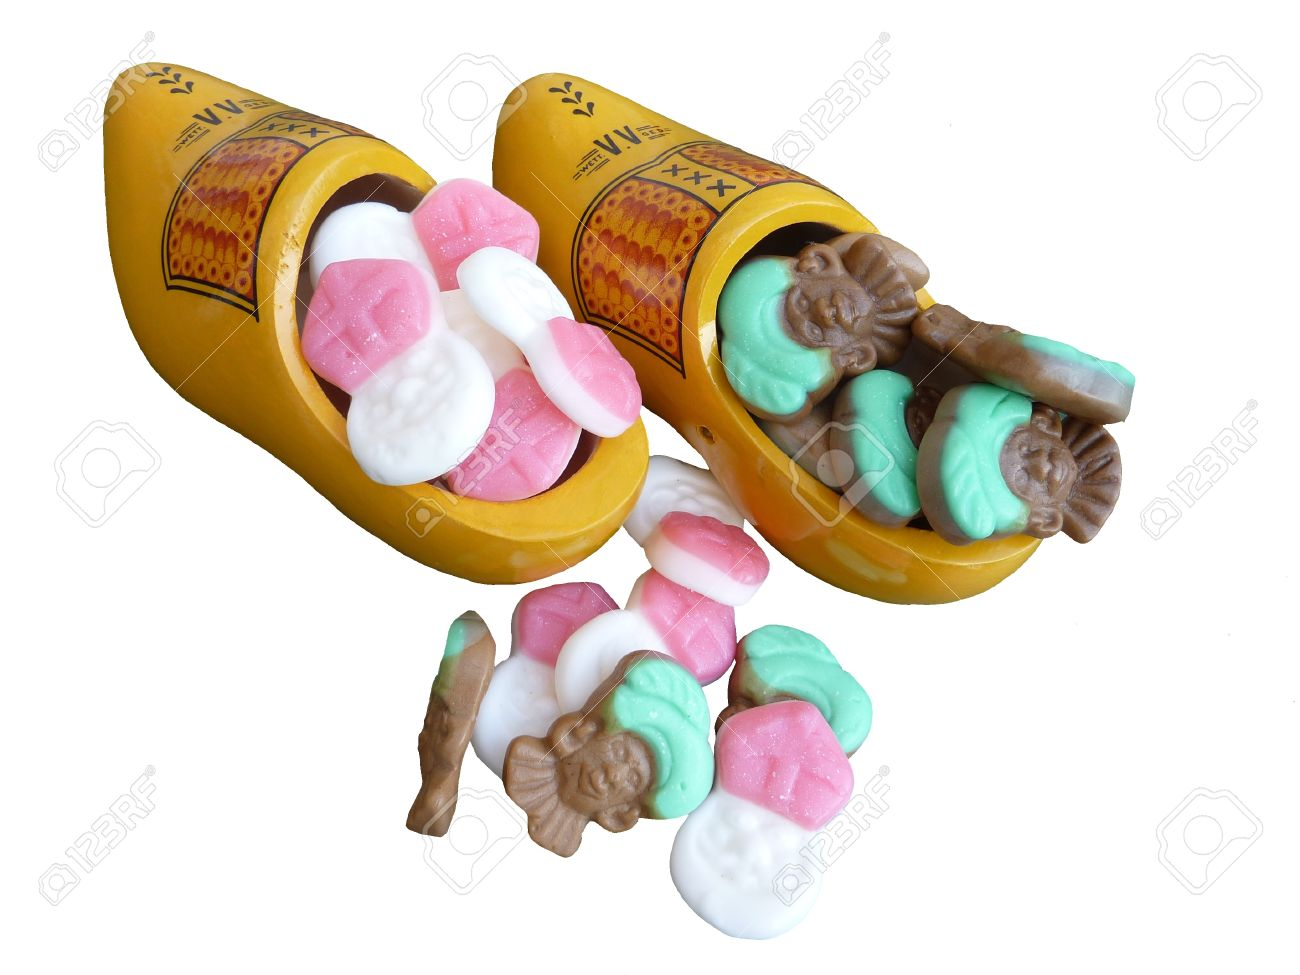 Wooden shoes with sweet cadies from Sinterklaas in the Netherlands Stock Photo - 10993186